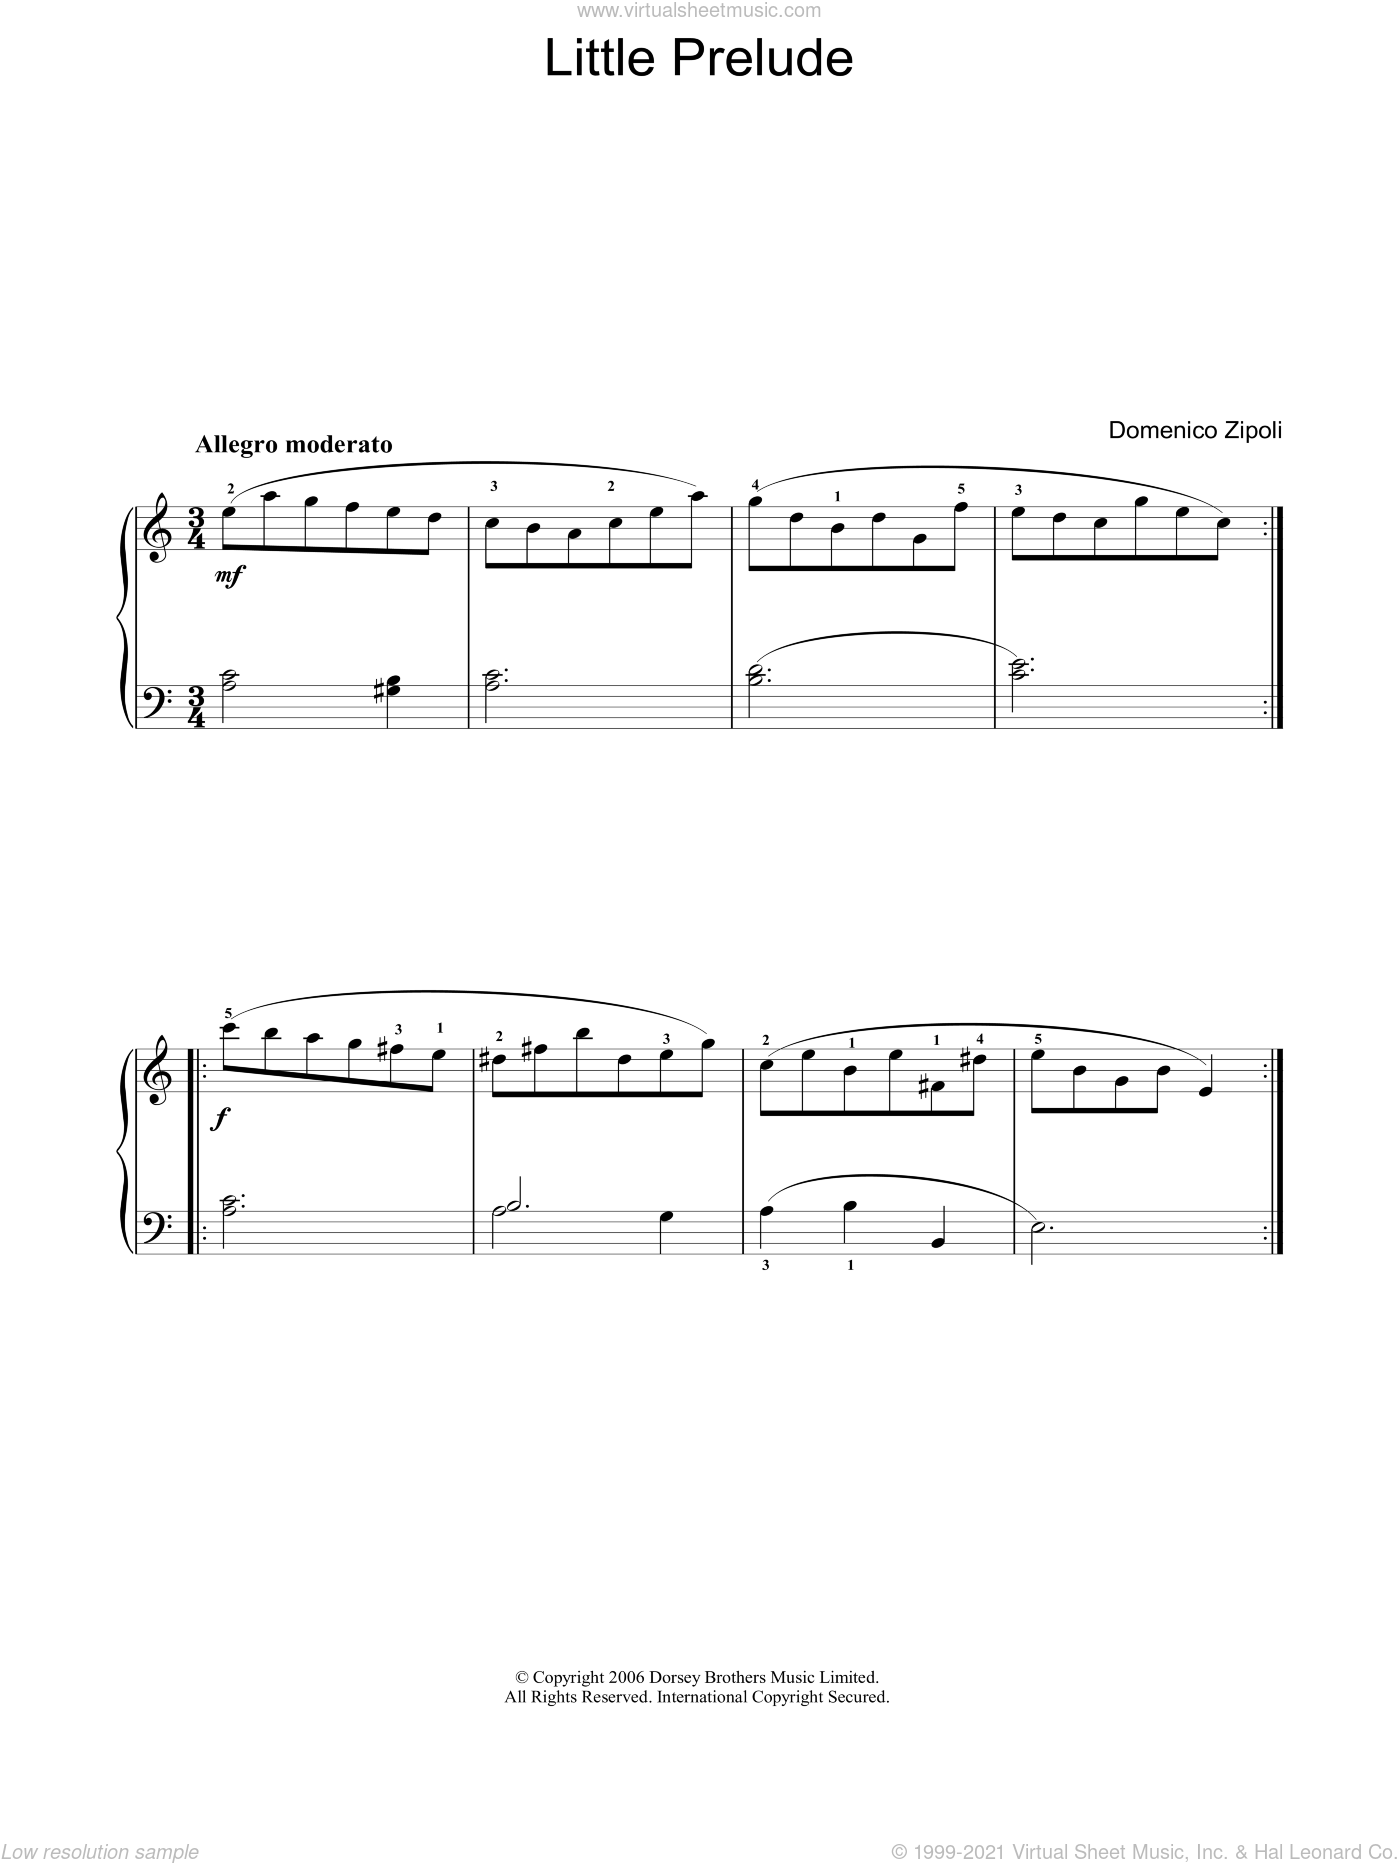 Little Prelude sheet music for voice, piano or guitar by Domenico Zipoli